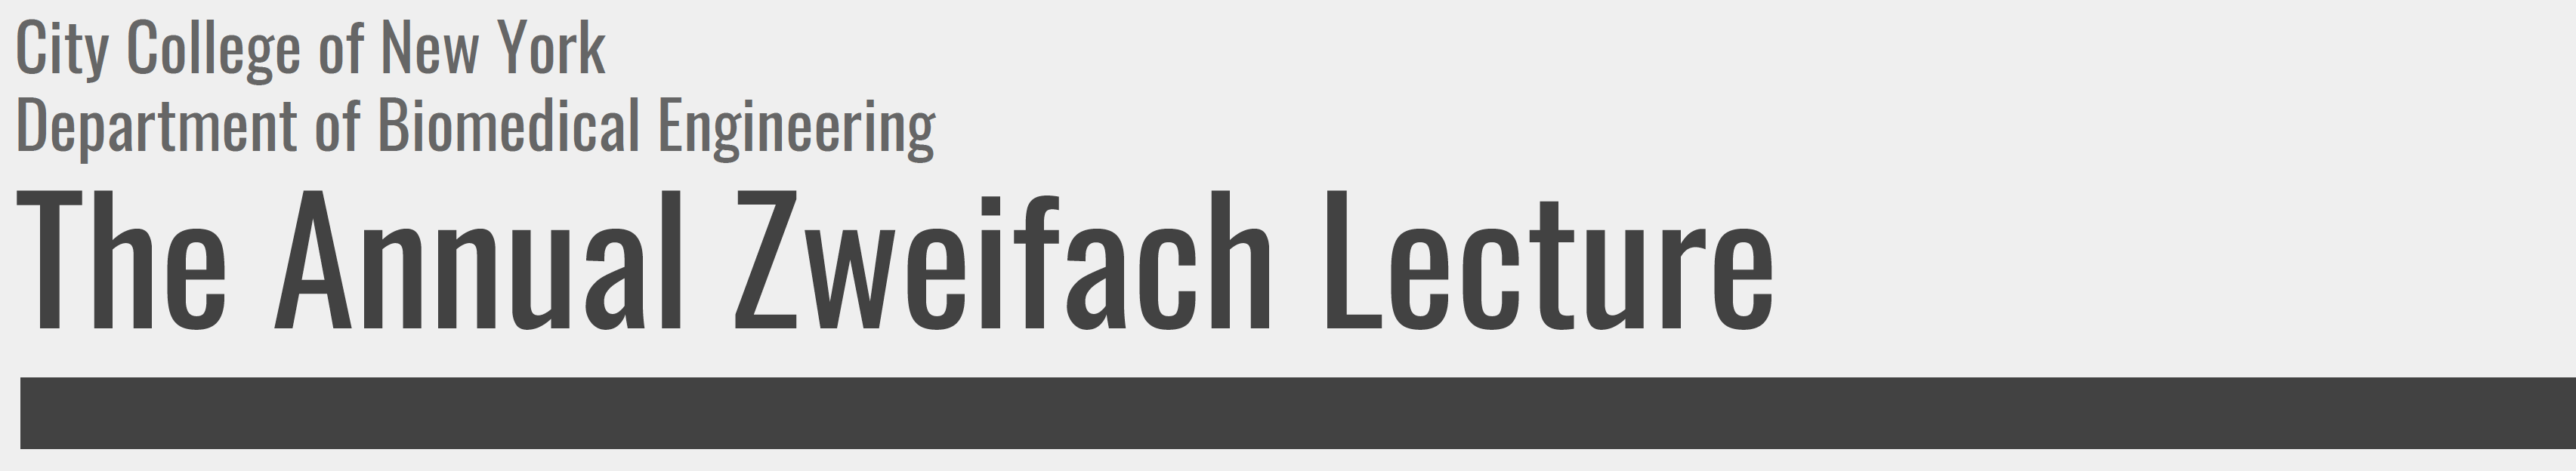 The Annual Zweifach Lecture